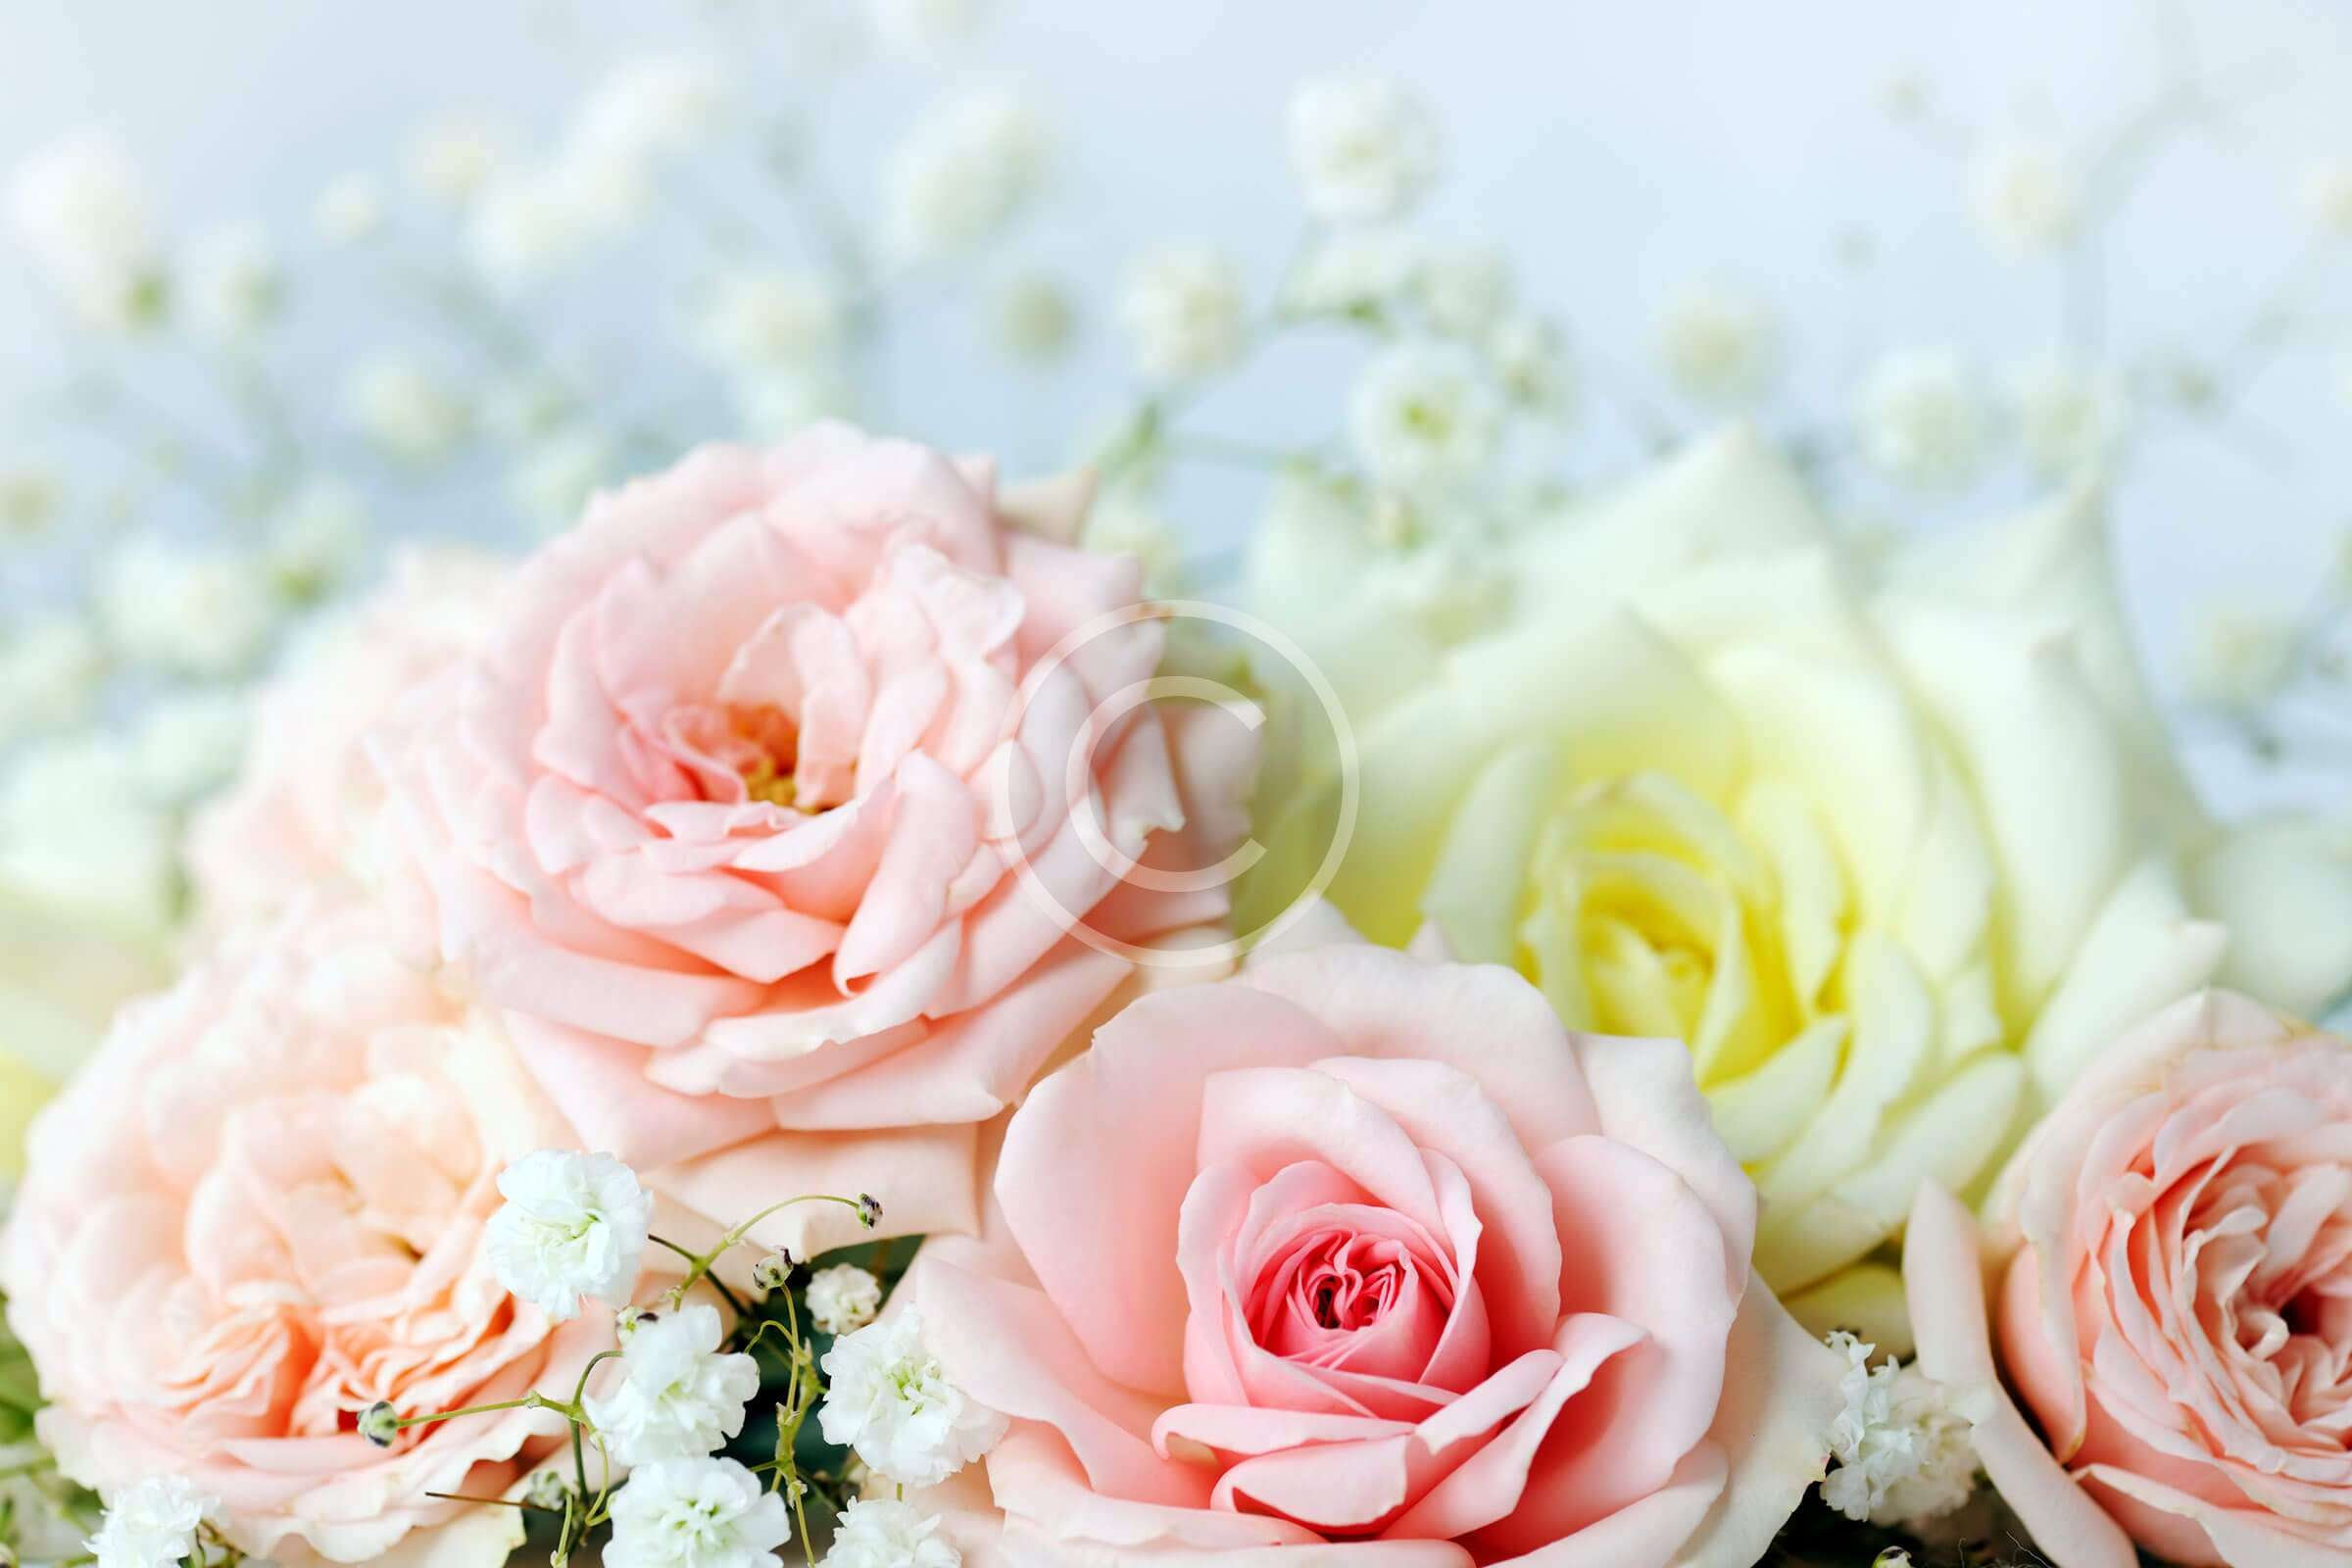 June Summer Wedding Bouquet Ideas